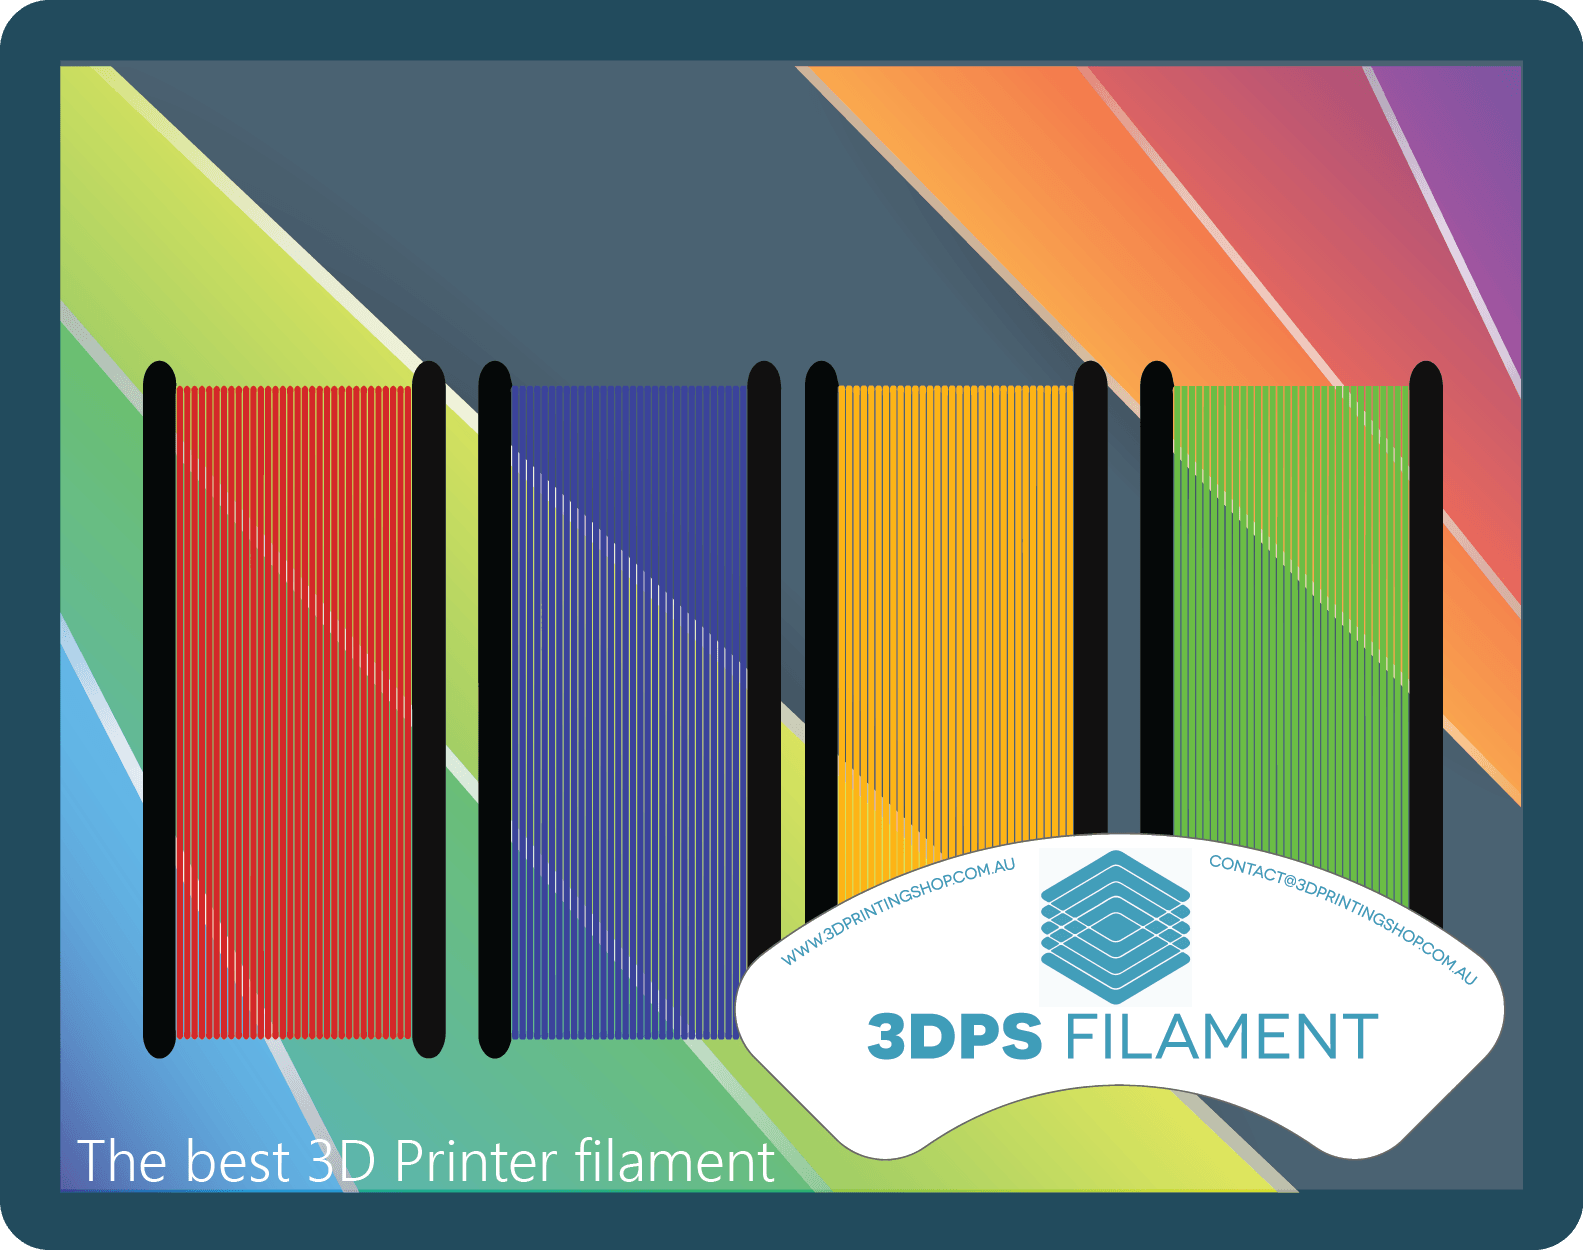 3DPS filament 3D Printing Shop